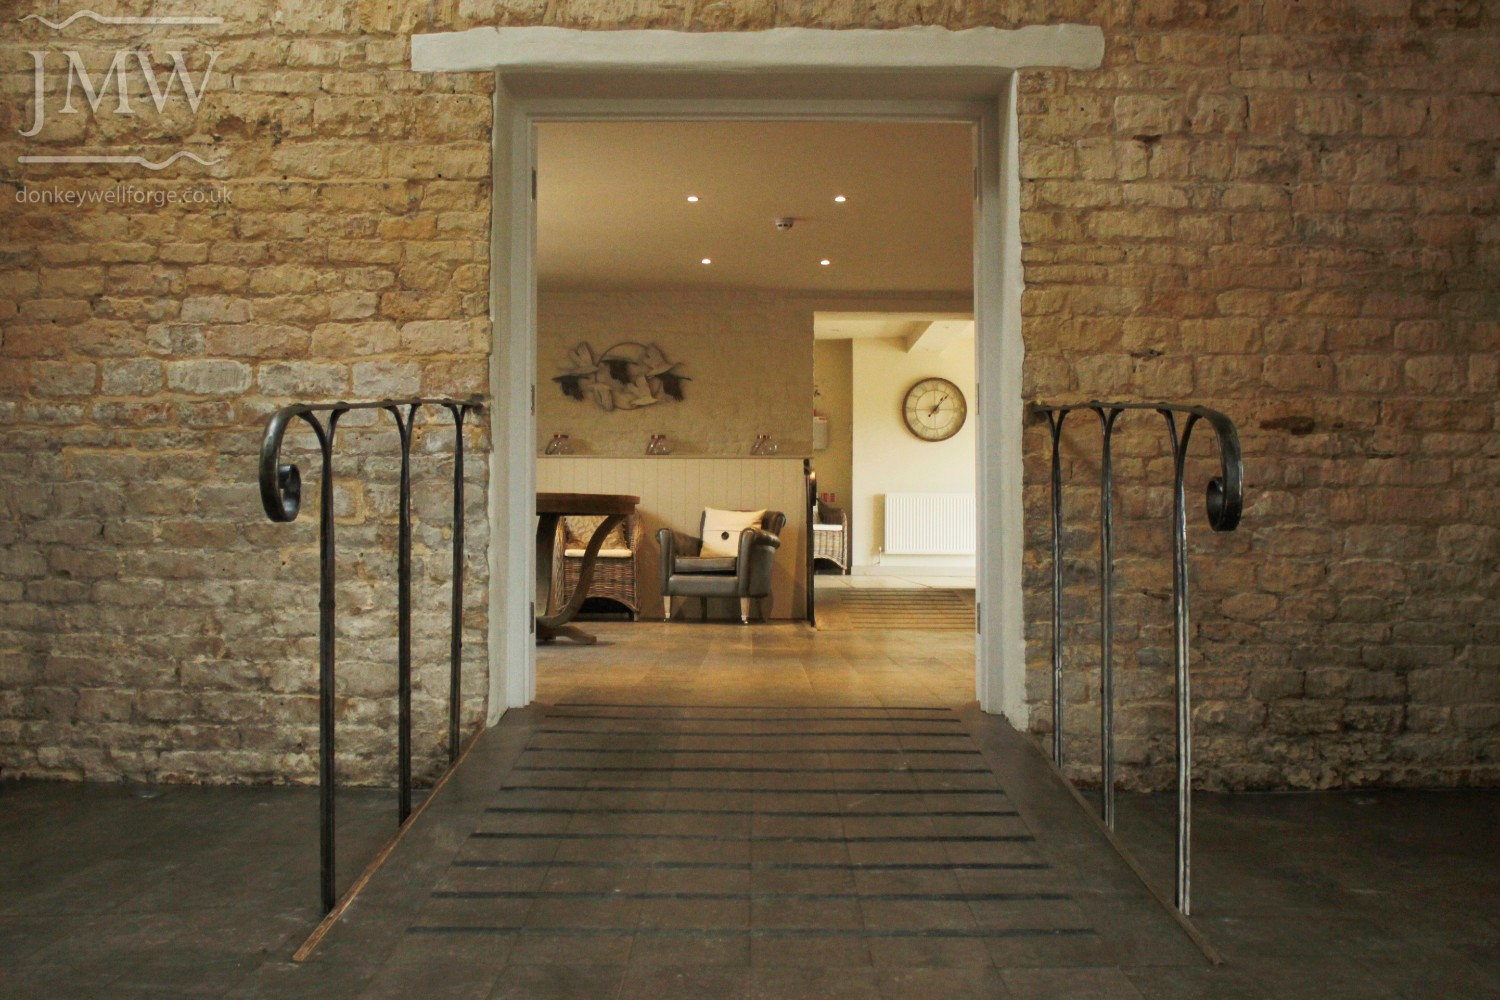 ironwork-handrail-wedding-venue-cotswolds-barn-architectual-rivets